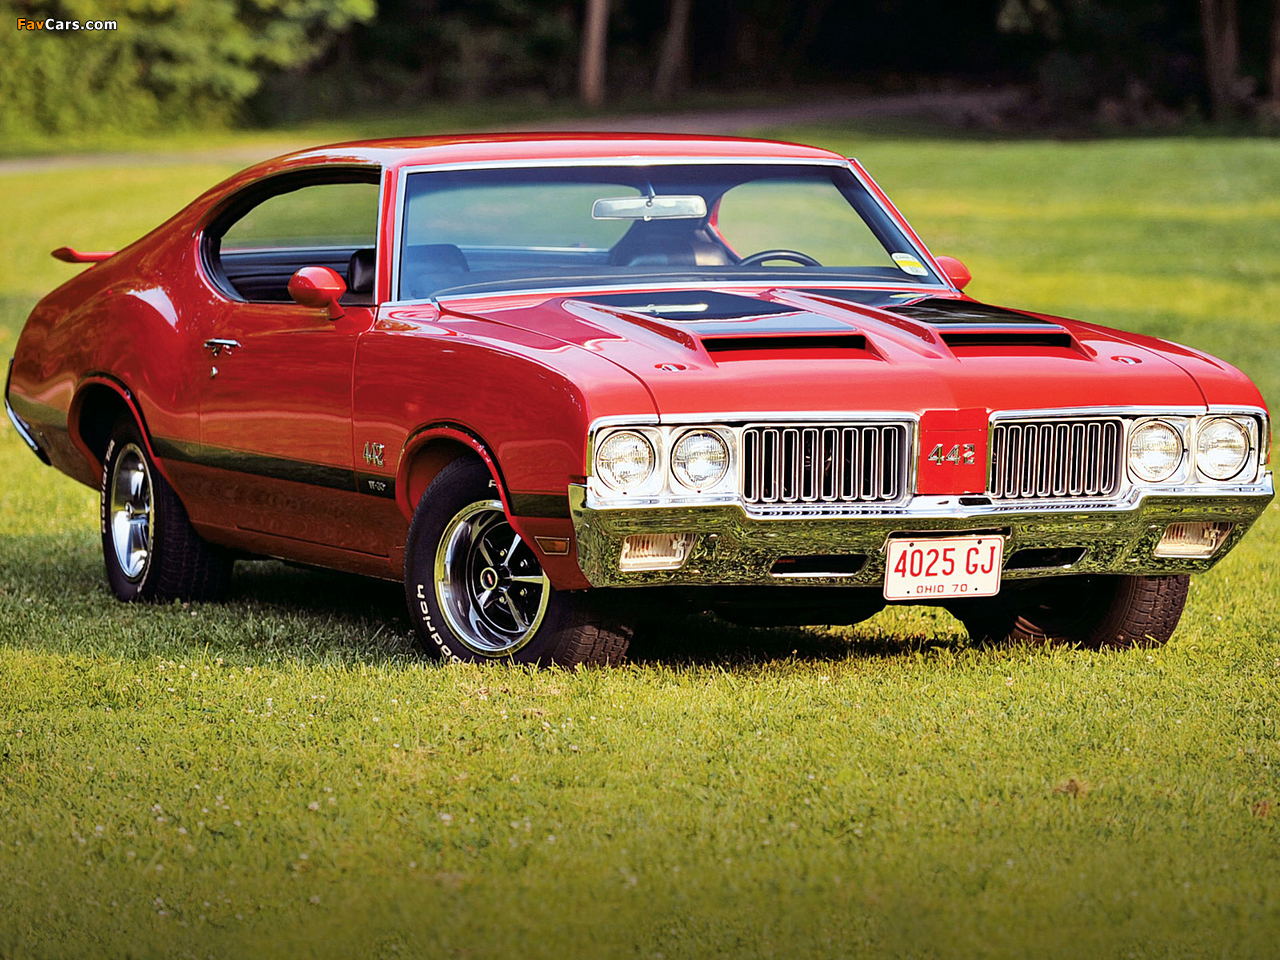 Oldsmobile 442 W-30 Holiday Coupe (4487) 1970 images (1280 x 960)